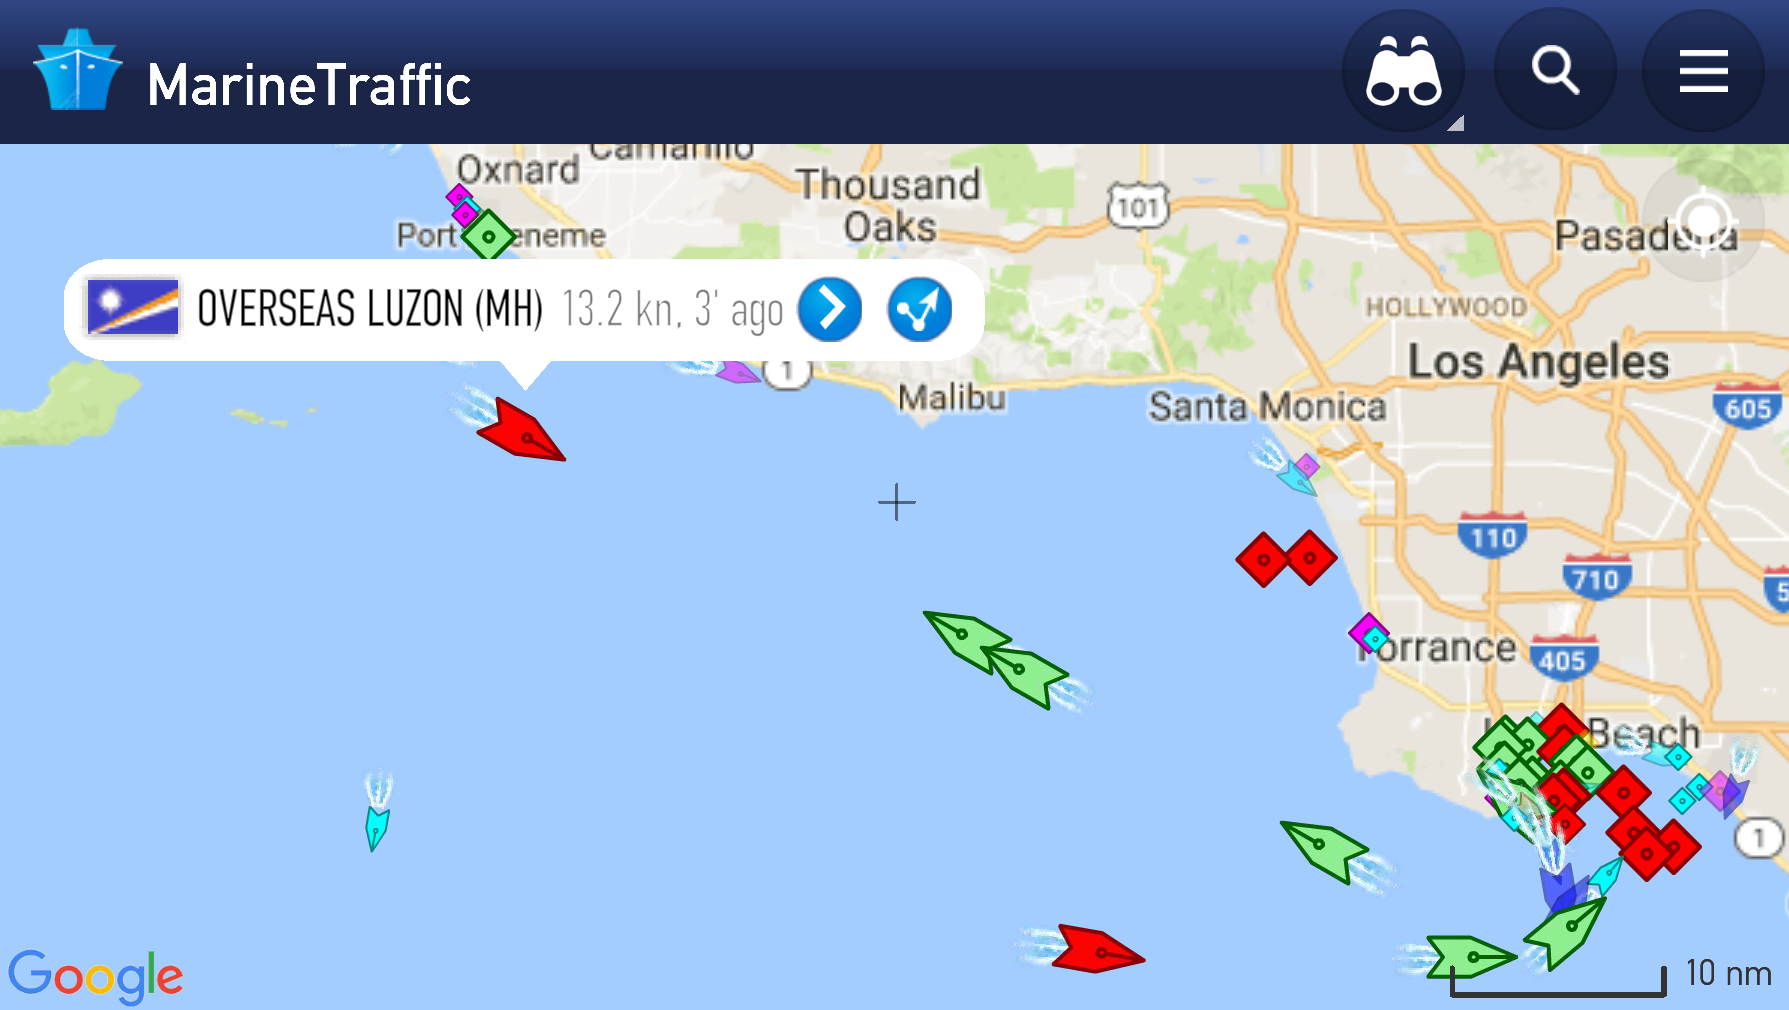 Refineries In California Map.Kinder Morgan Tankers Delivering Oil To California Not Asia Dogwood